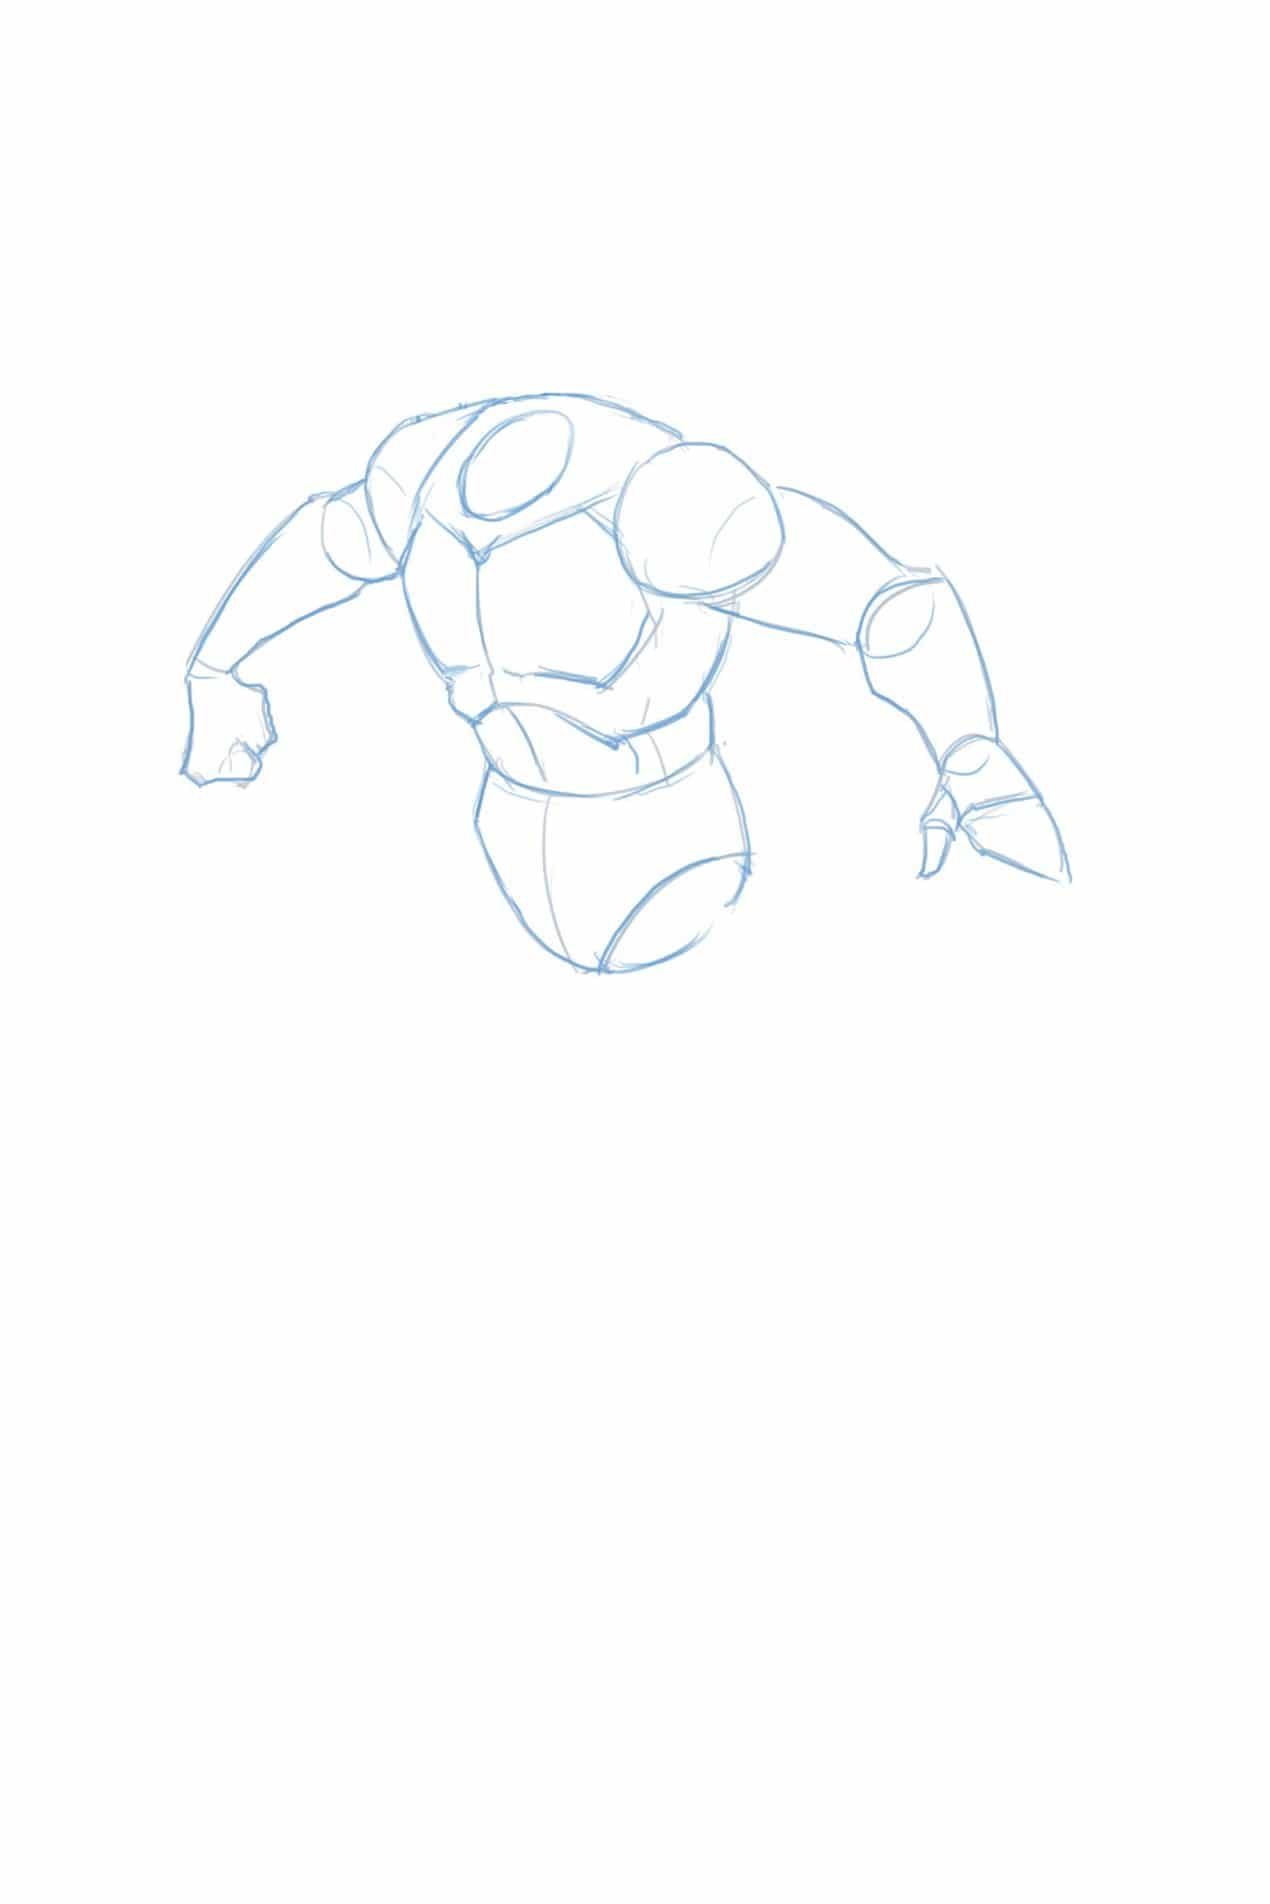 How_to_draw_batman_full_body_arms_hands